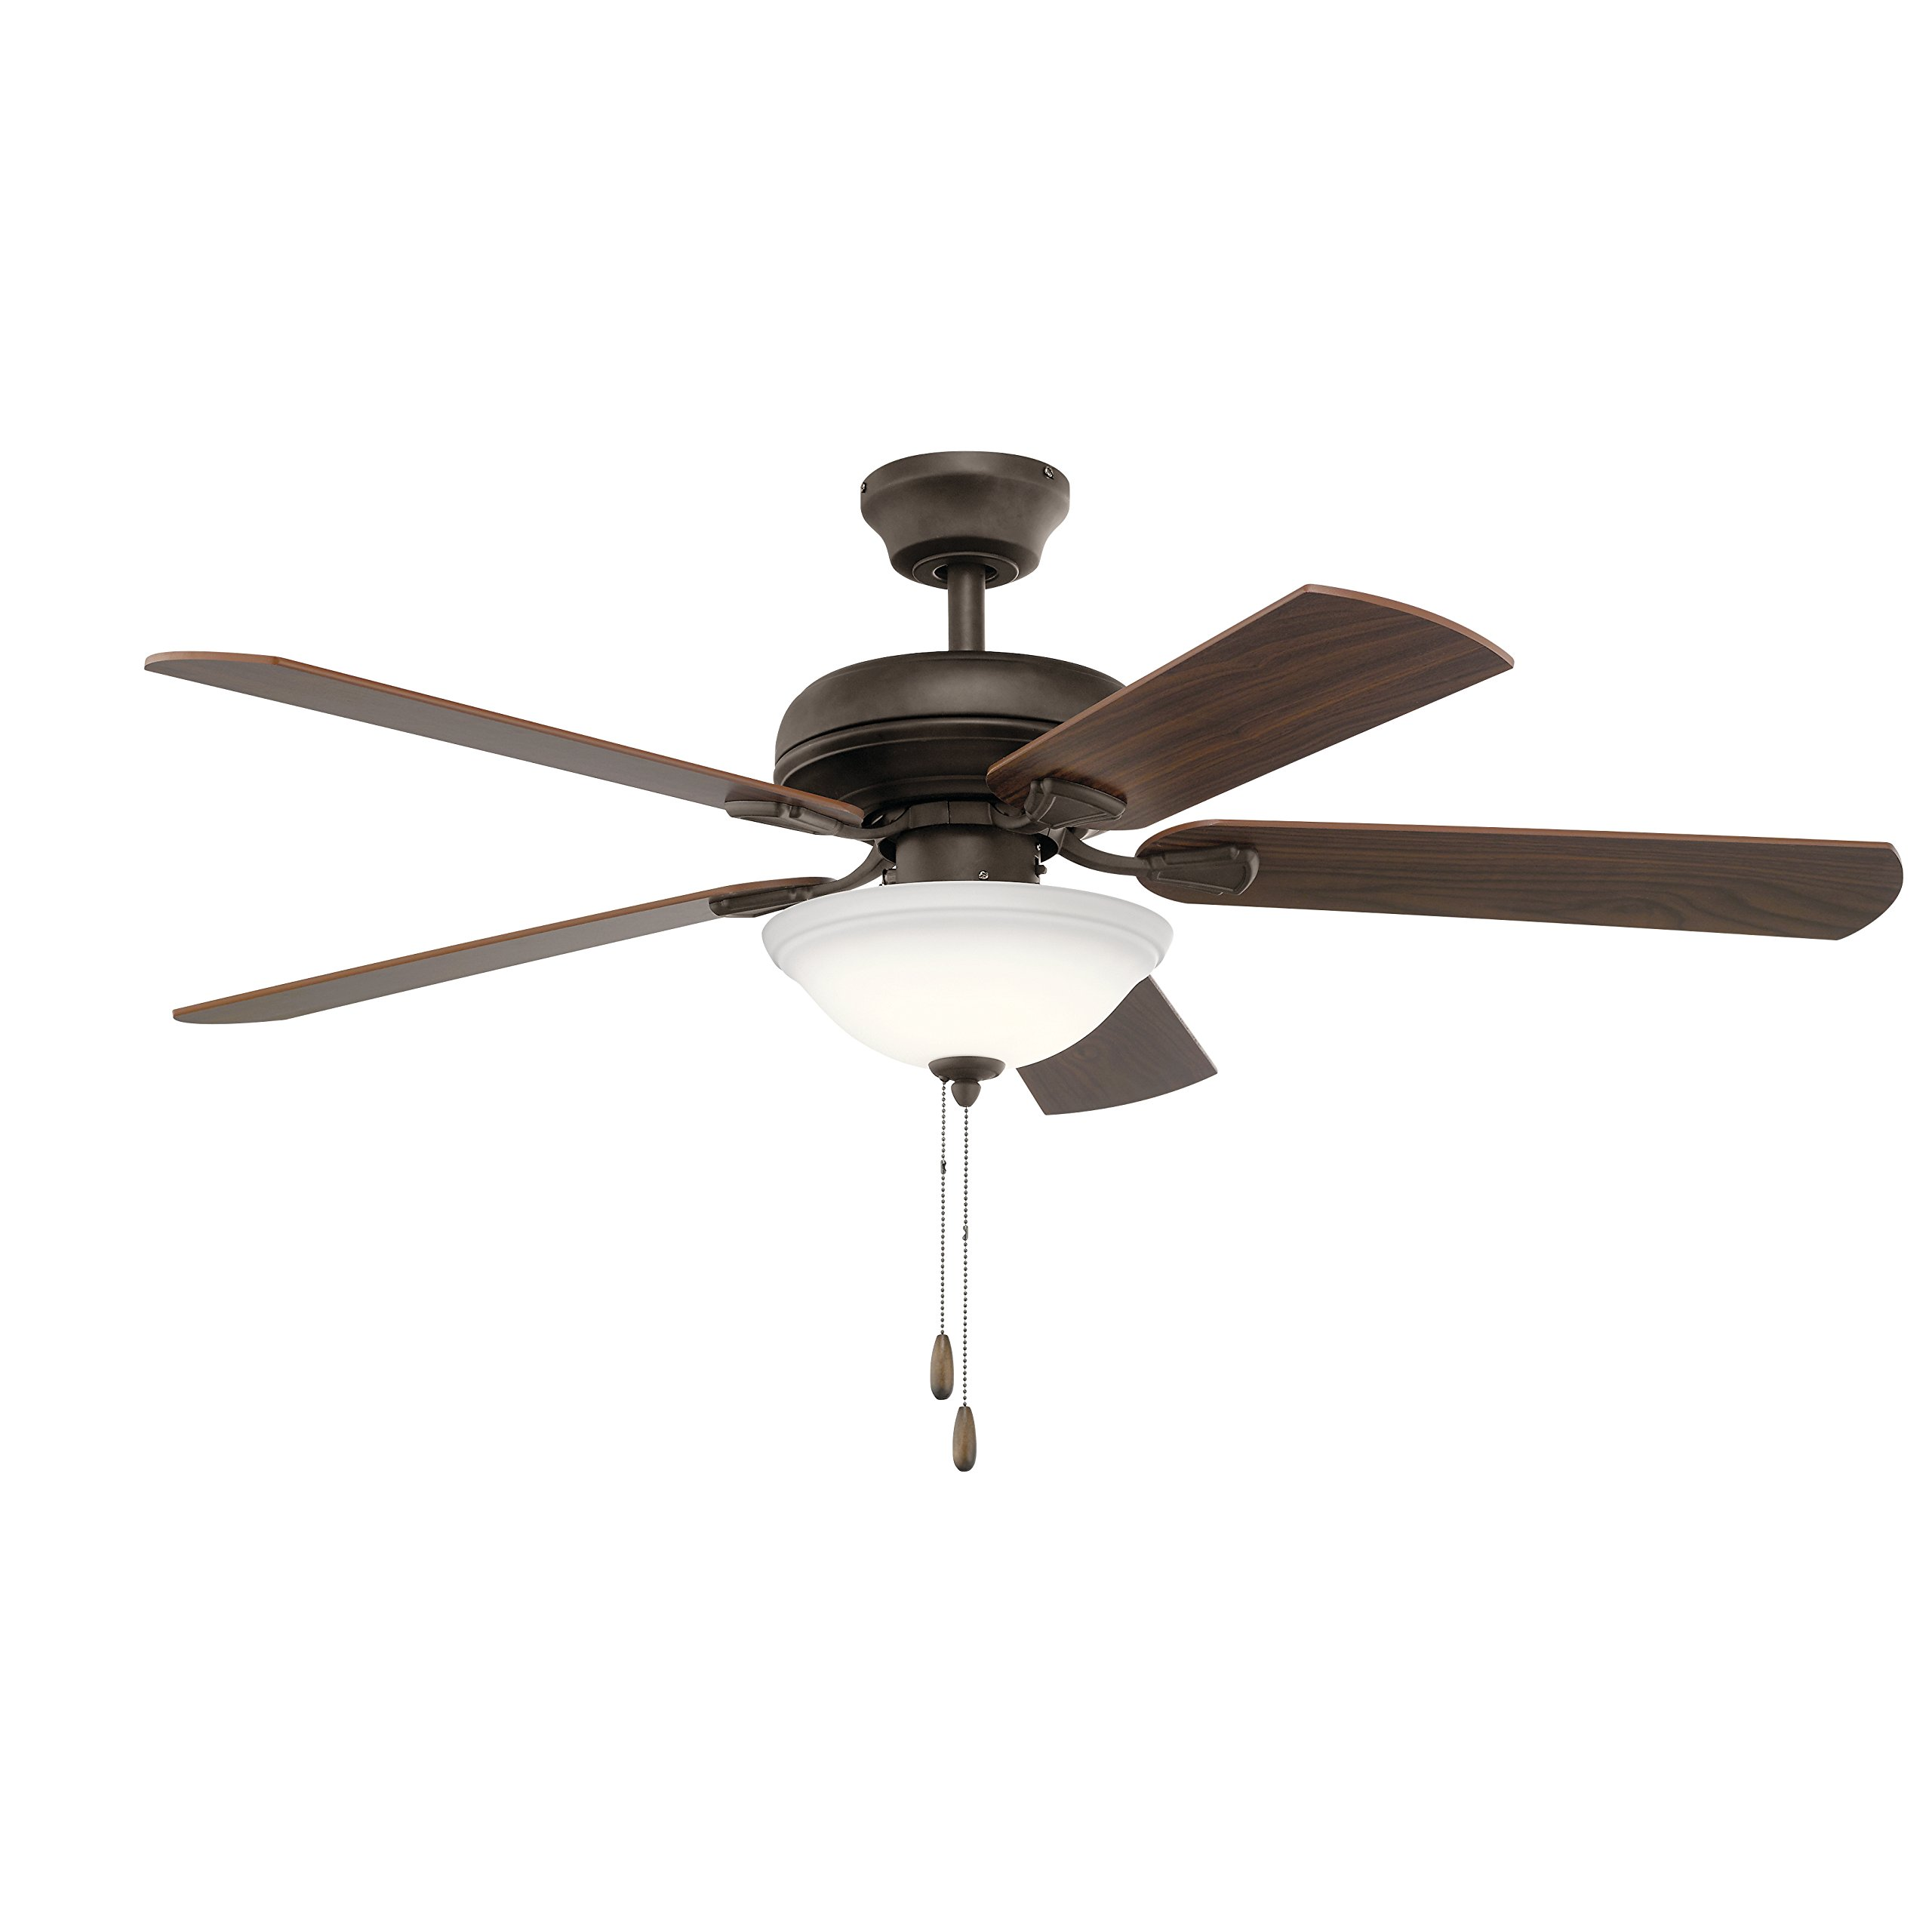 Kichler 330330SNB 52 Inch Ezra Ceiling Fan in Satin Natural Bronze with LED Light